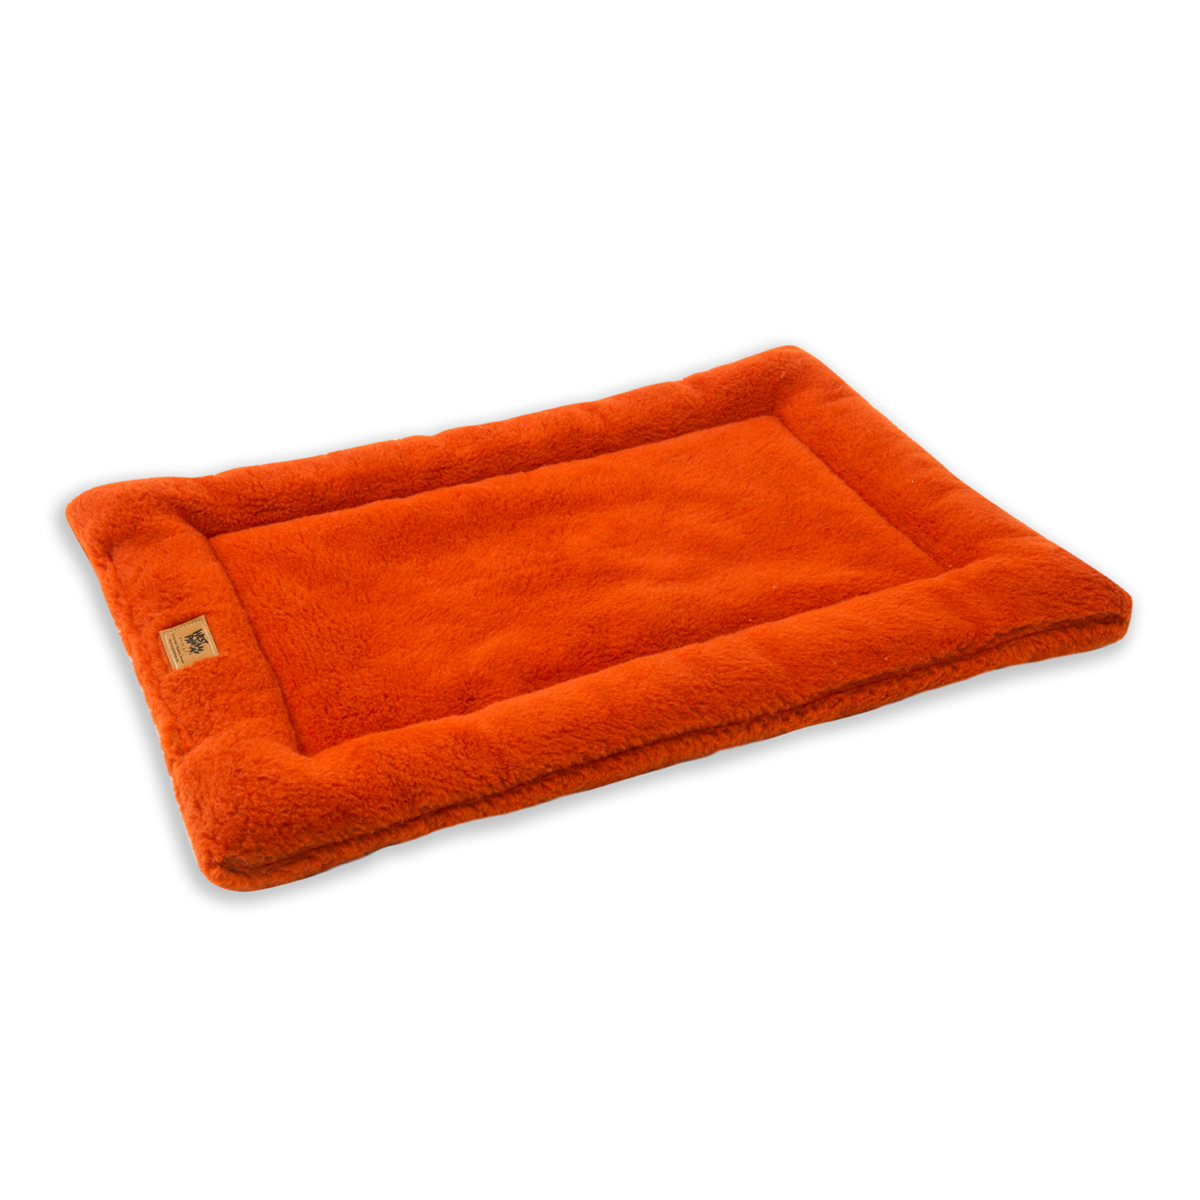 Montana Nap Pet Bed by West Paw Design - Pumpkin